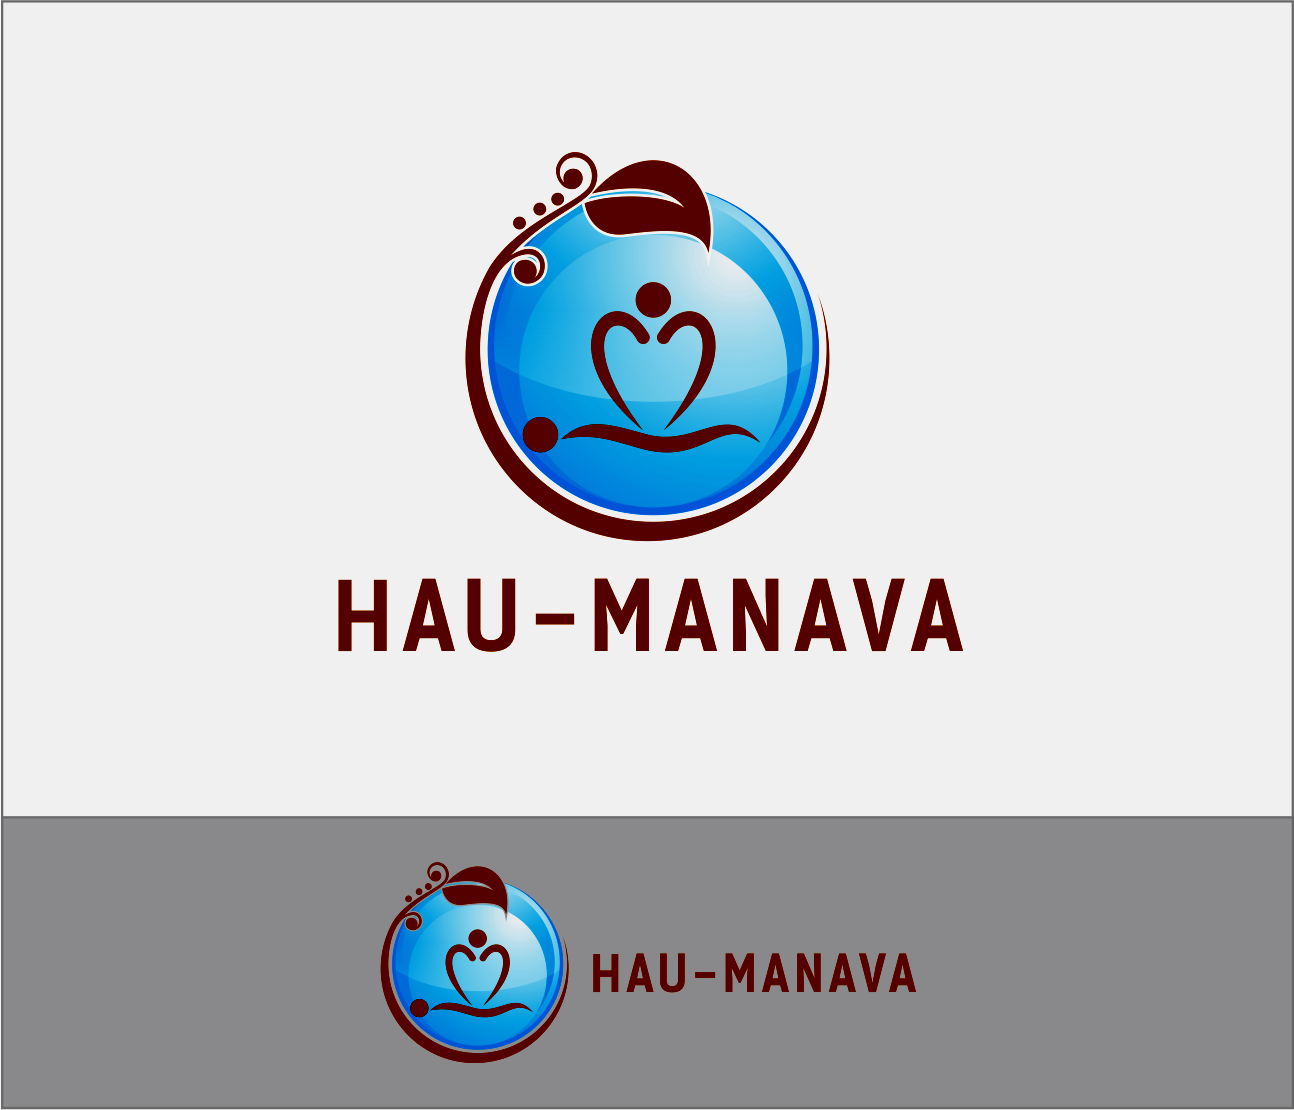 Logo Design by Armada Jamaluddin - Entry No. 44 in the Logo Design Contest Hau-Manava Logo Design.